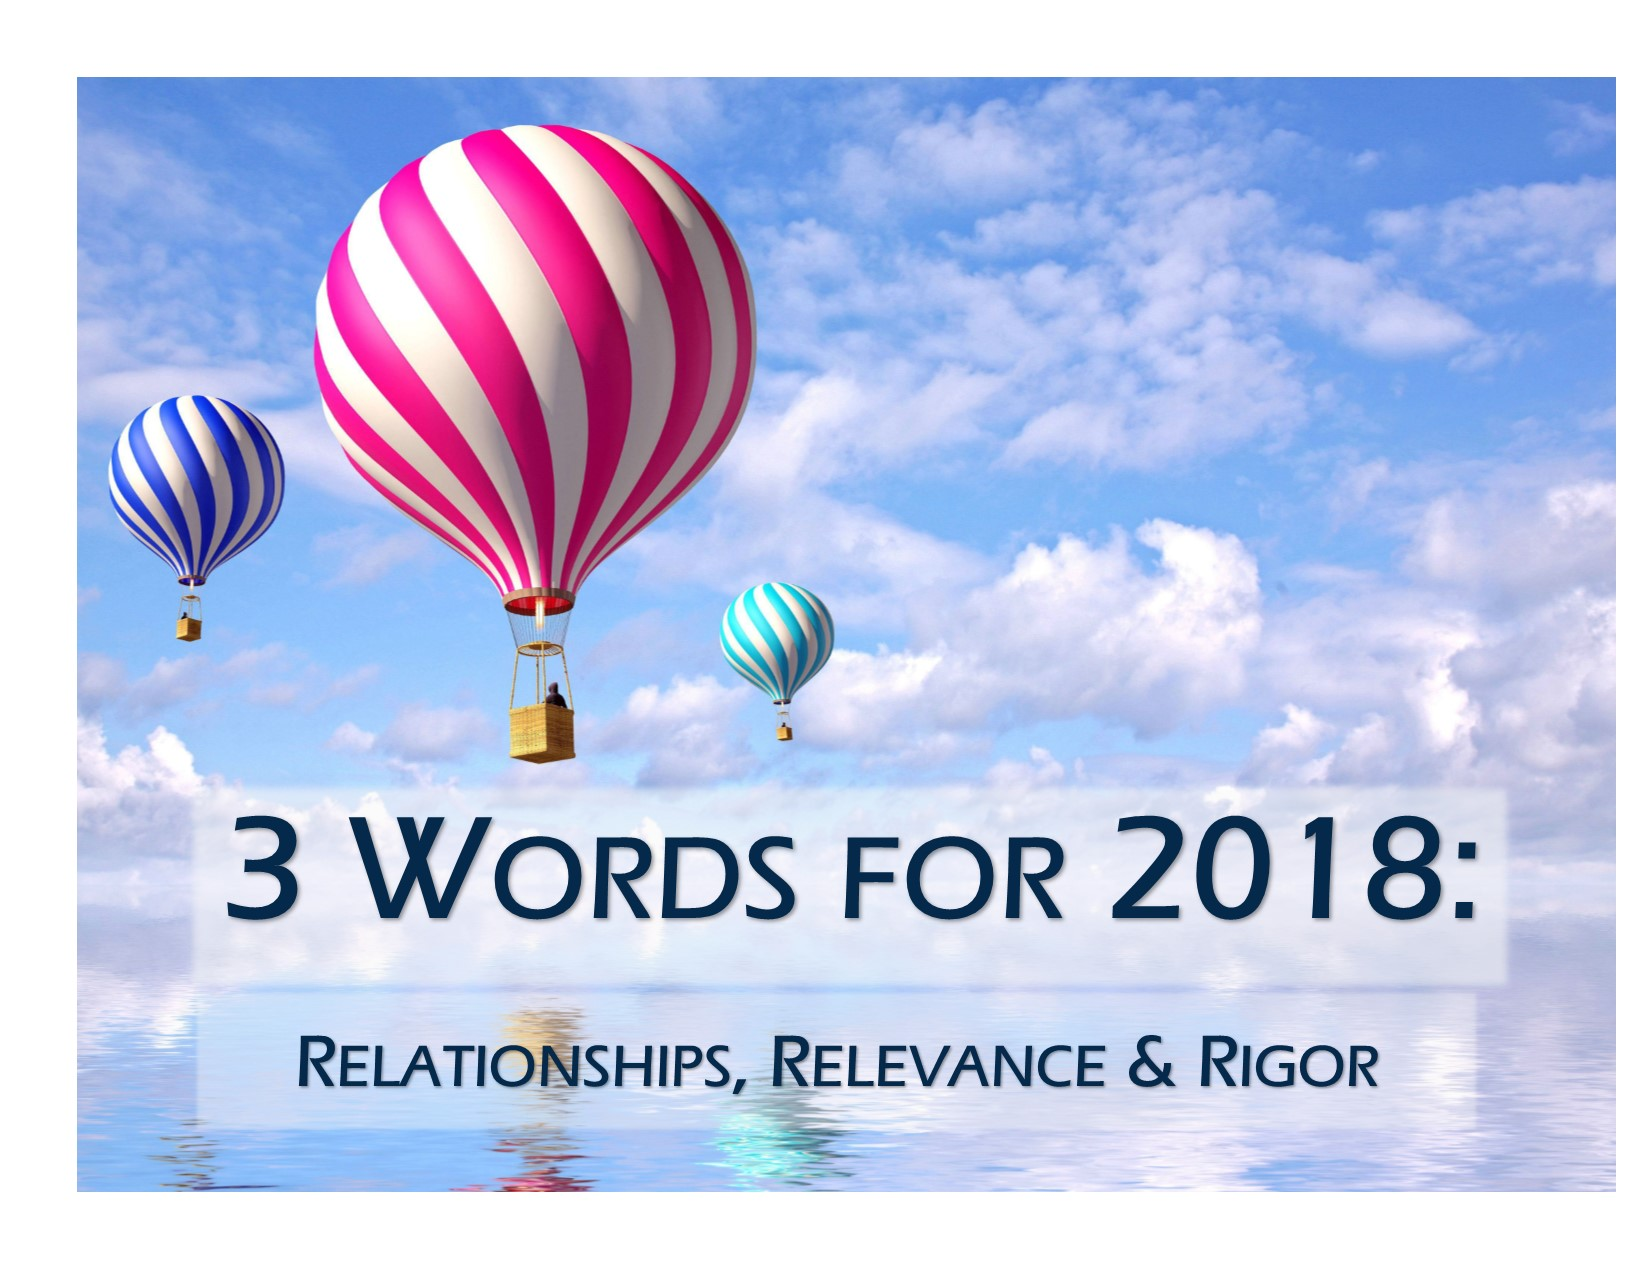 3 Words for 2018: Relationships, Relevance and Rigor